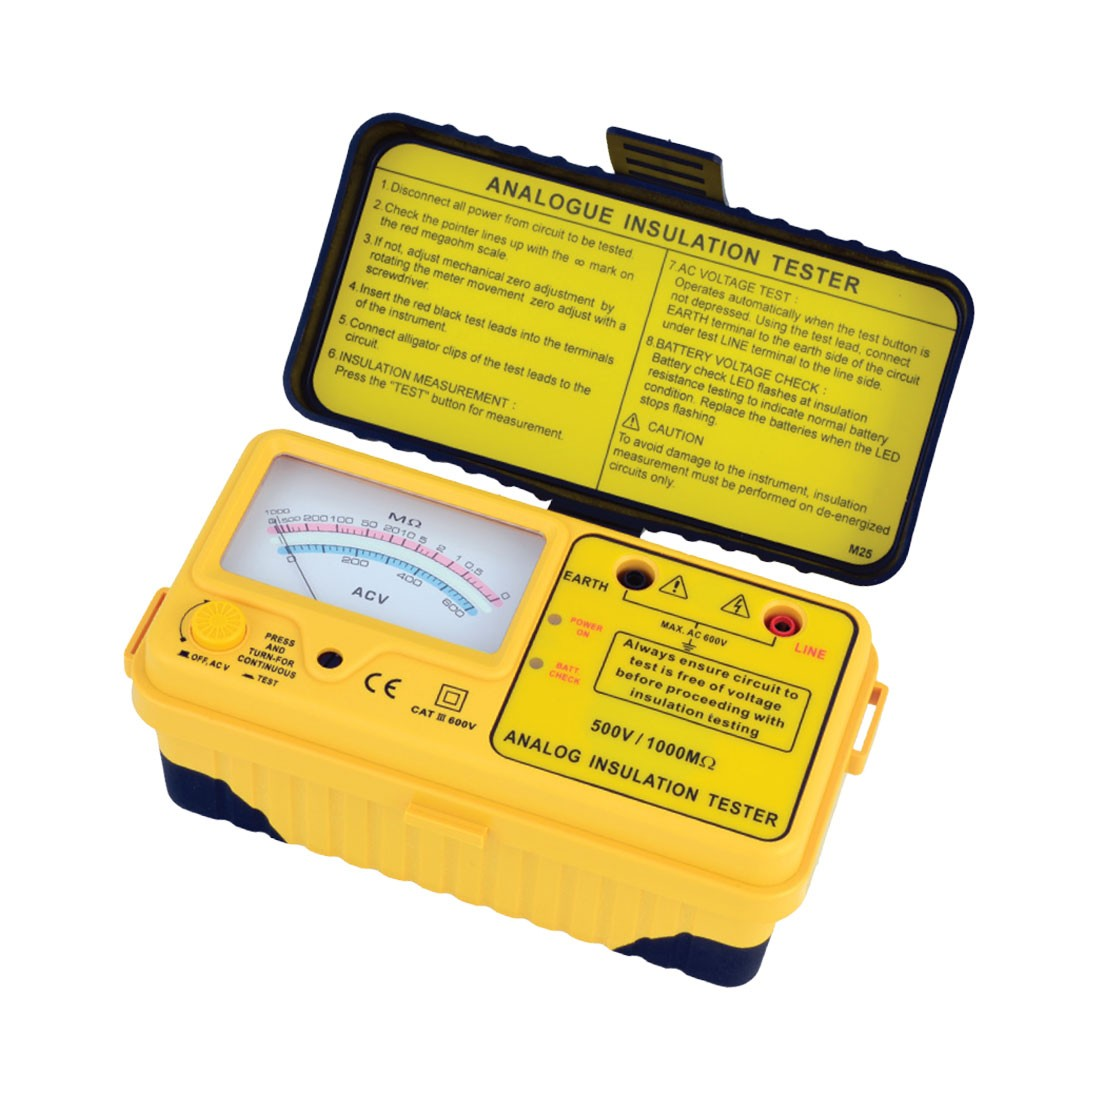 1125IN Series: Analogue (1kV below) Insulation Tester